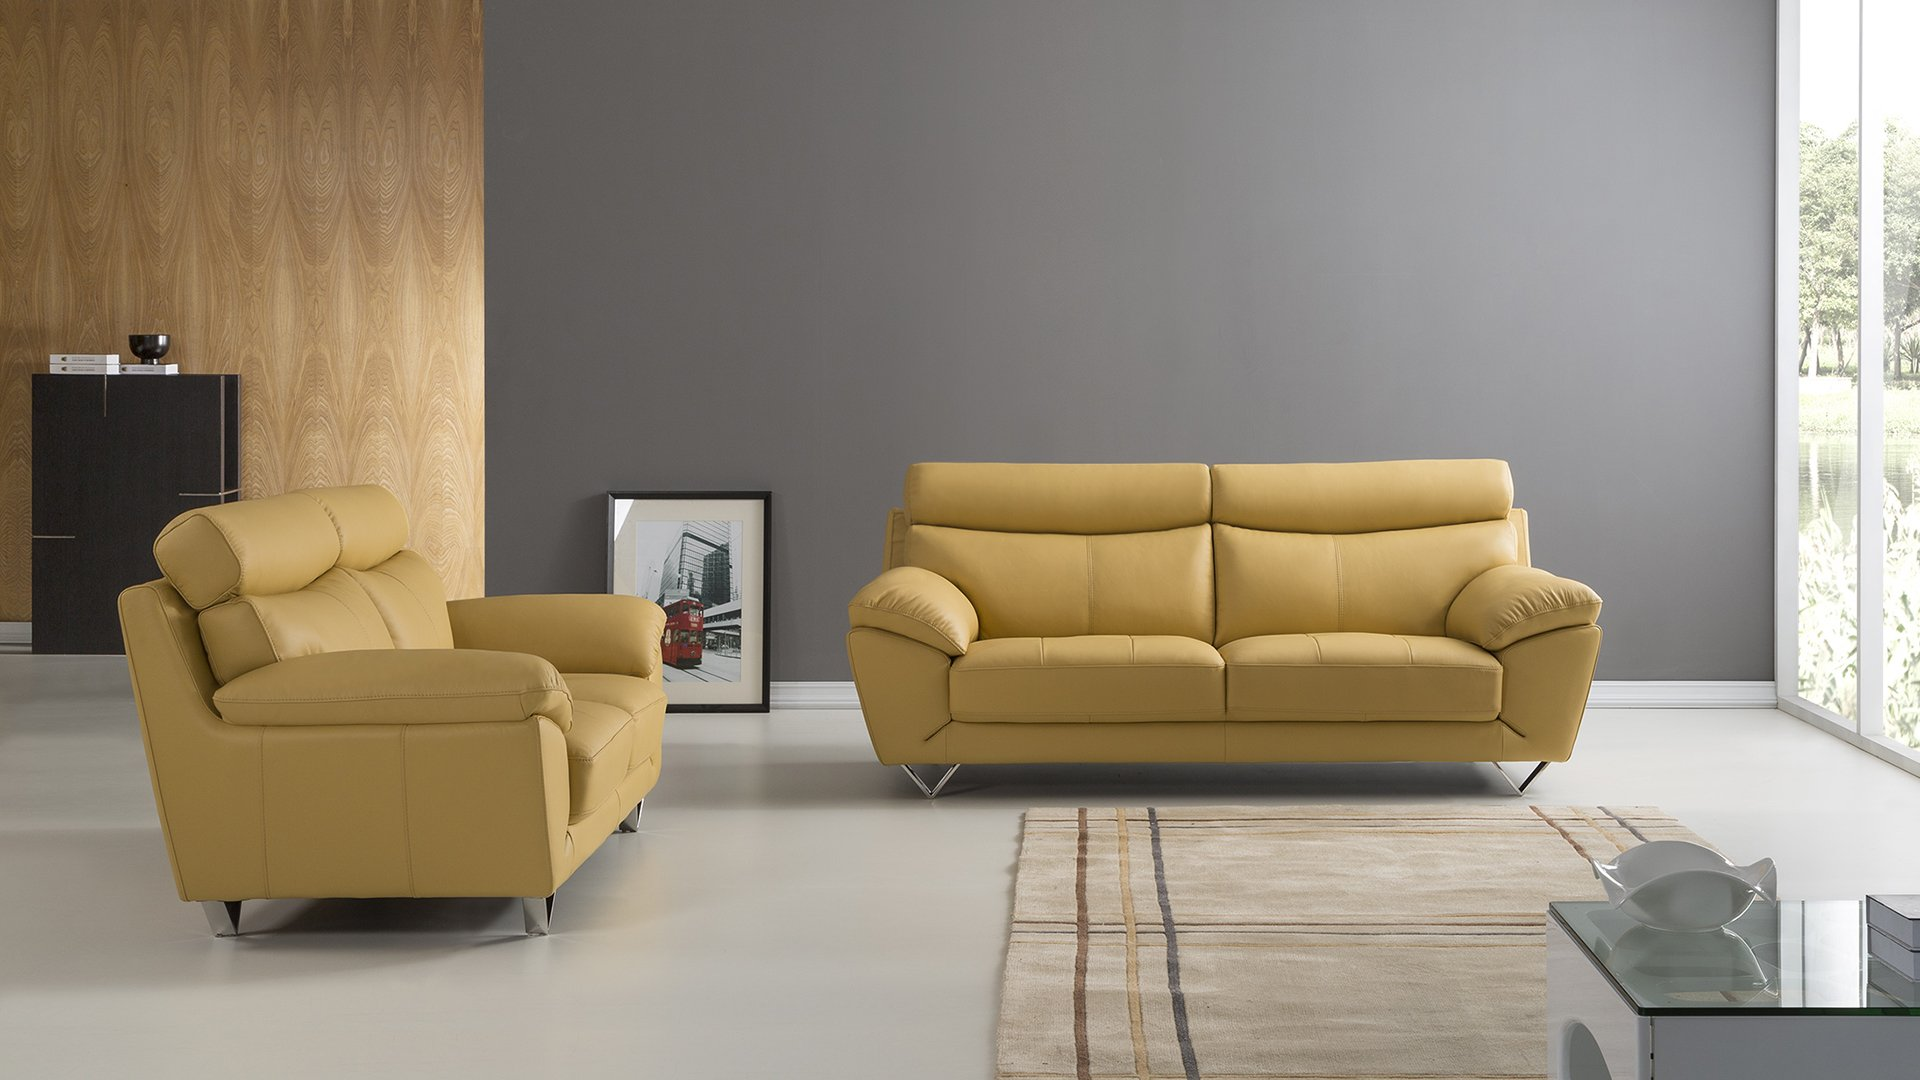 American Eagle Furniture 2 Piece Valencia Collection Complete Italian Leather Living Room Sofa Set, Yellow